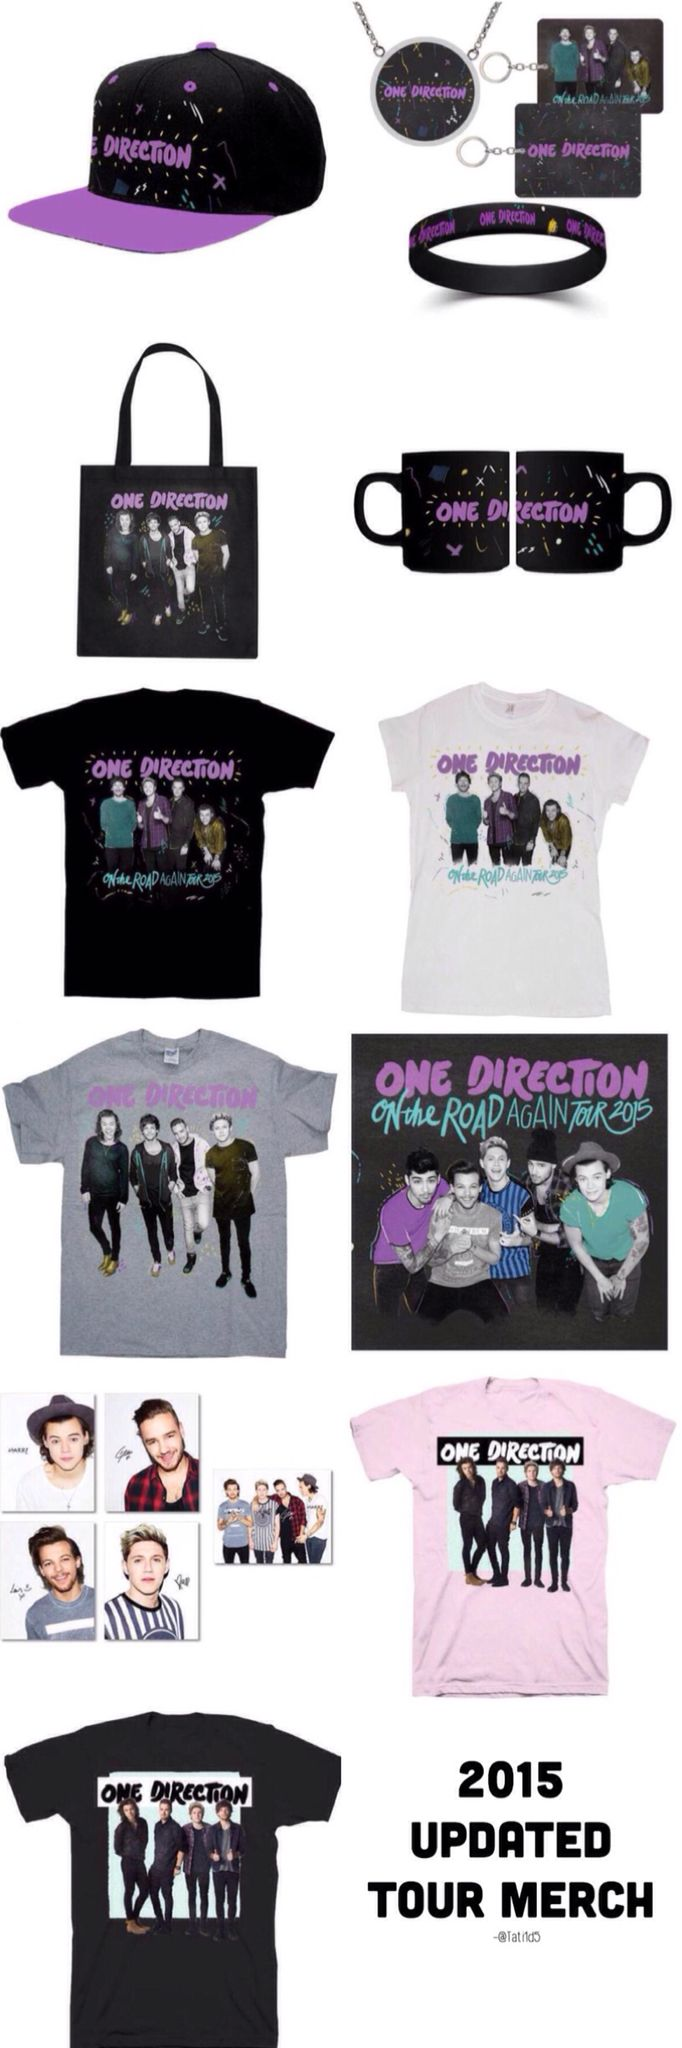 Design t shirt one direction - 2015 Updated Otra Tour Merch These Are Available Online And At The Concert One Direction T Shirtsone